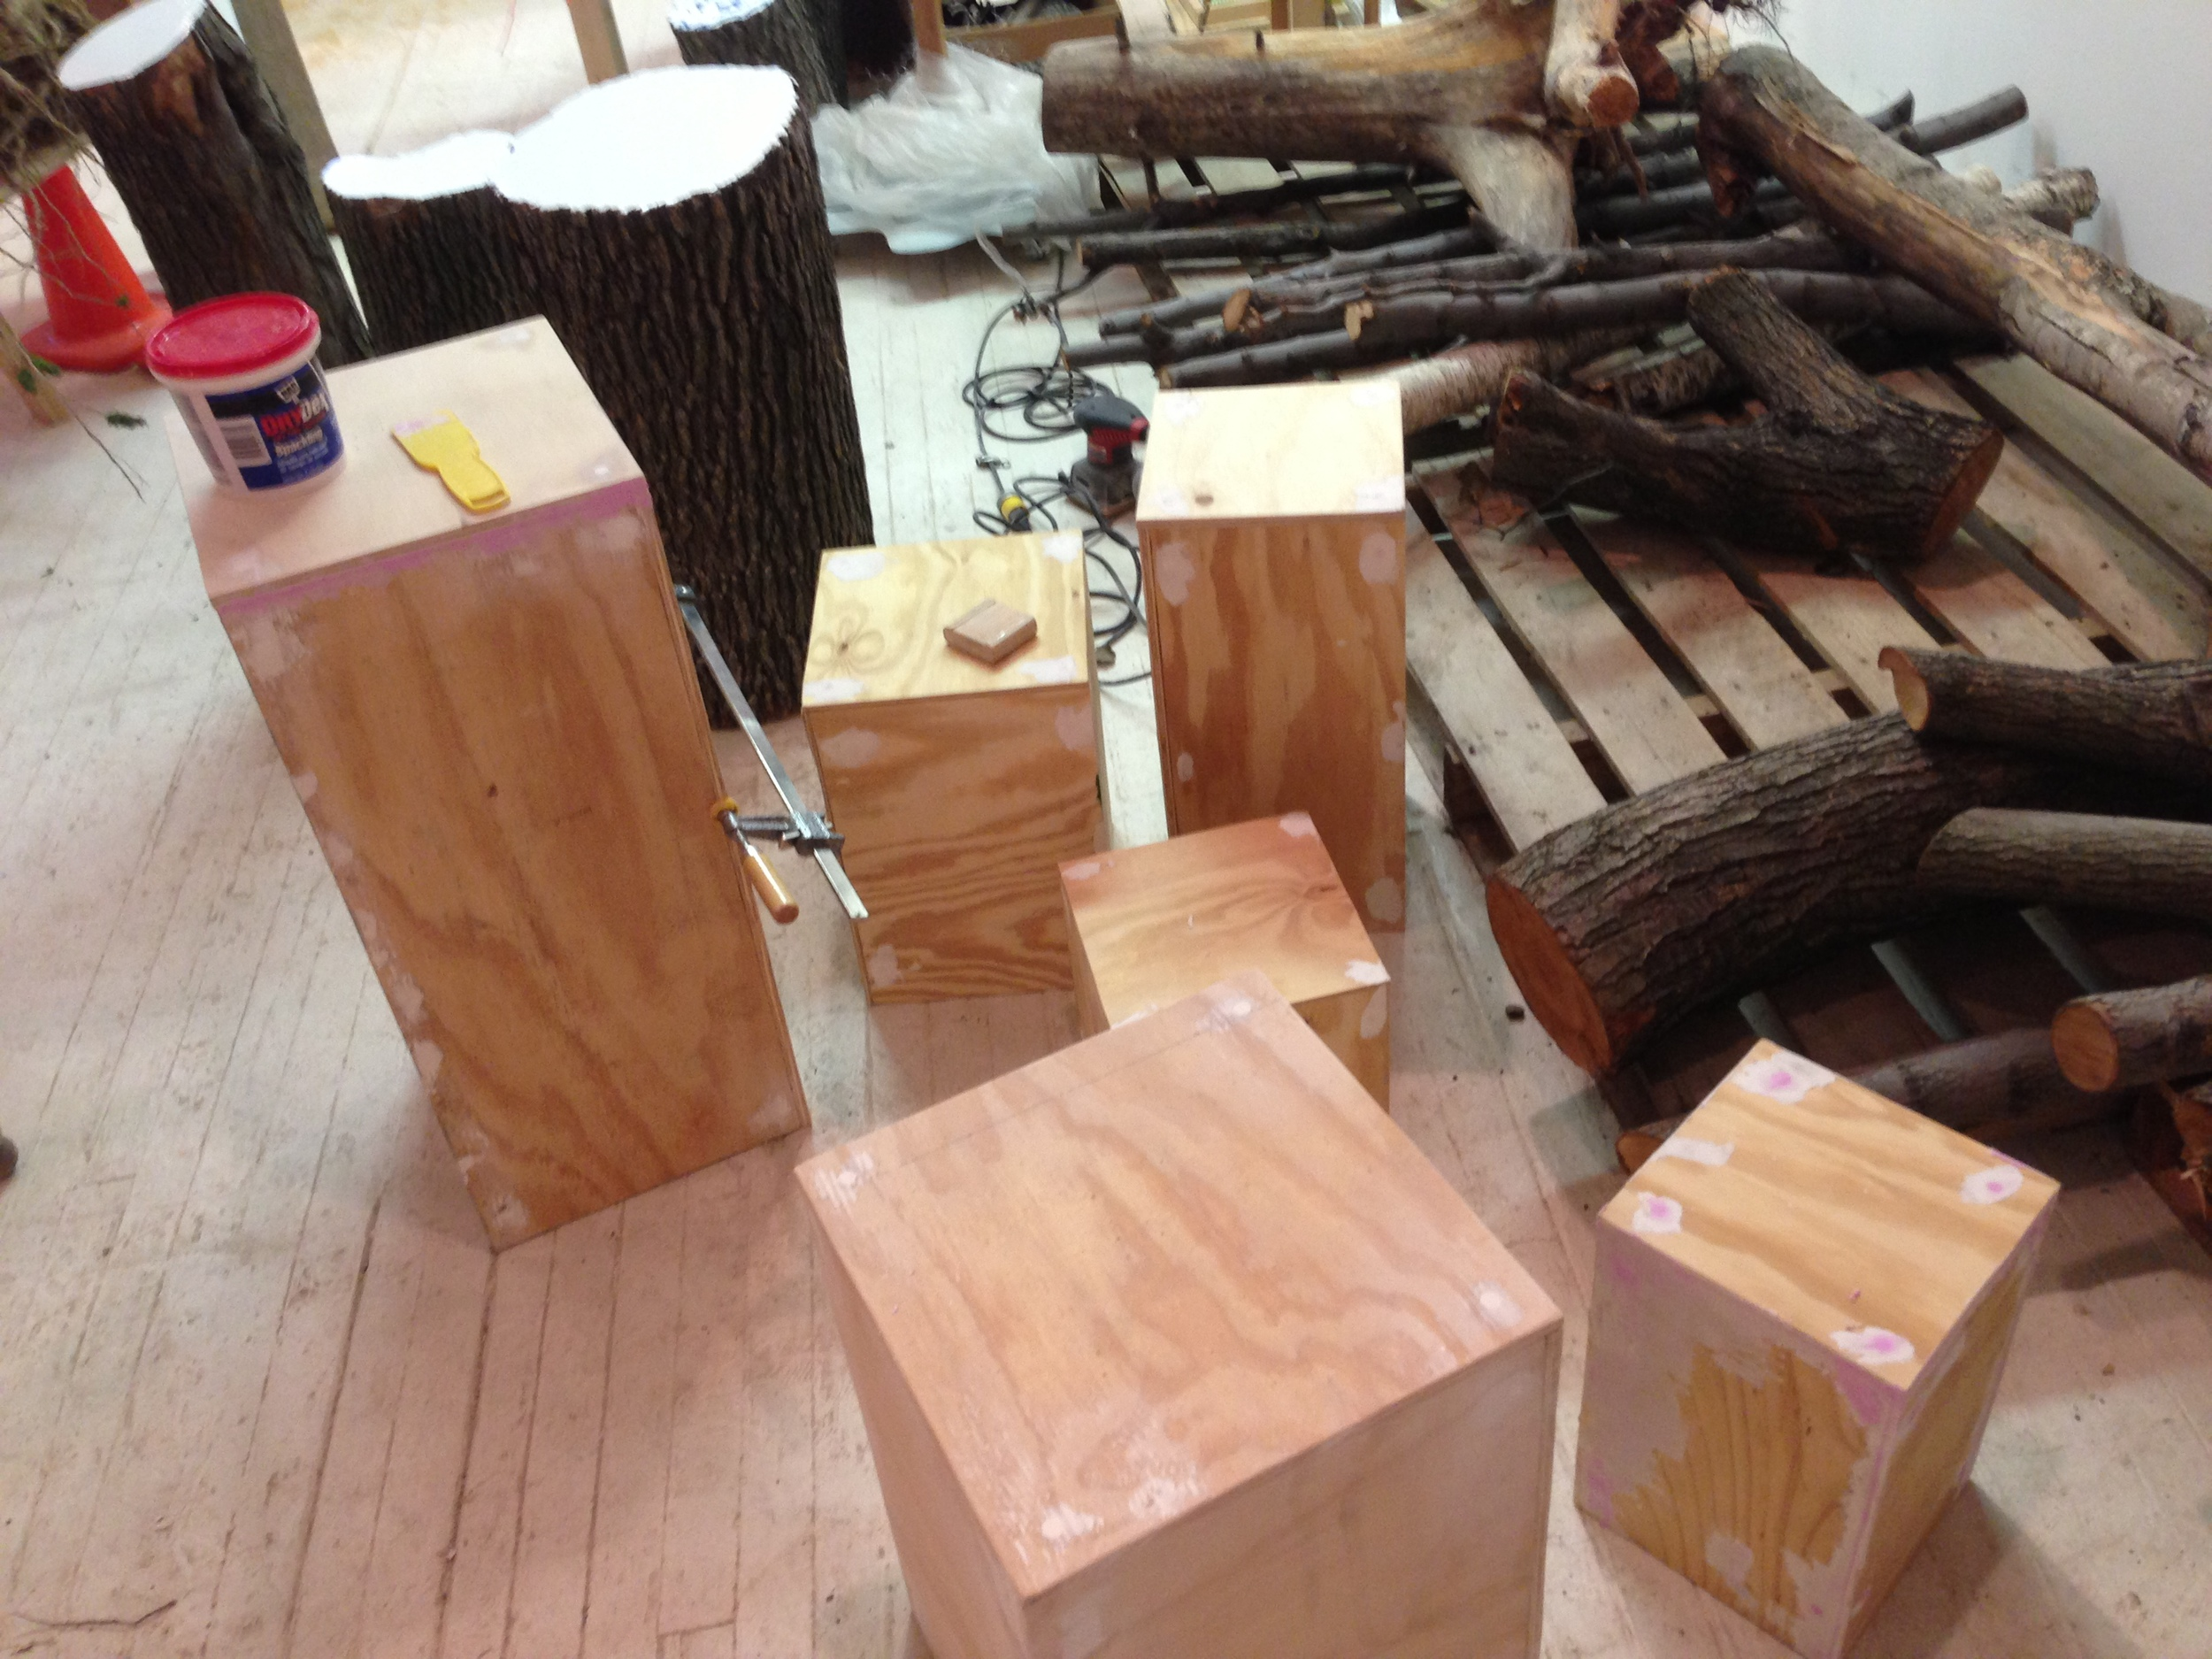 Wooden pedestals for small detailed artwork